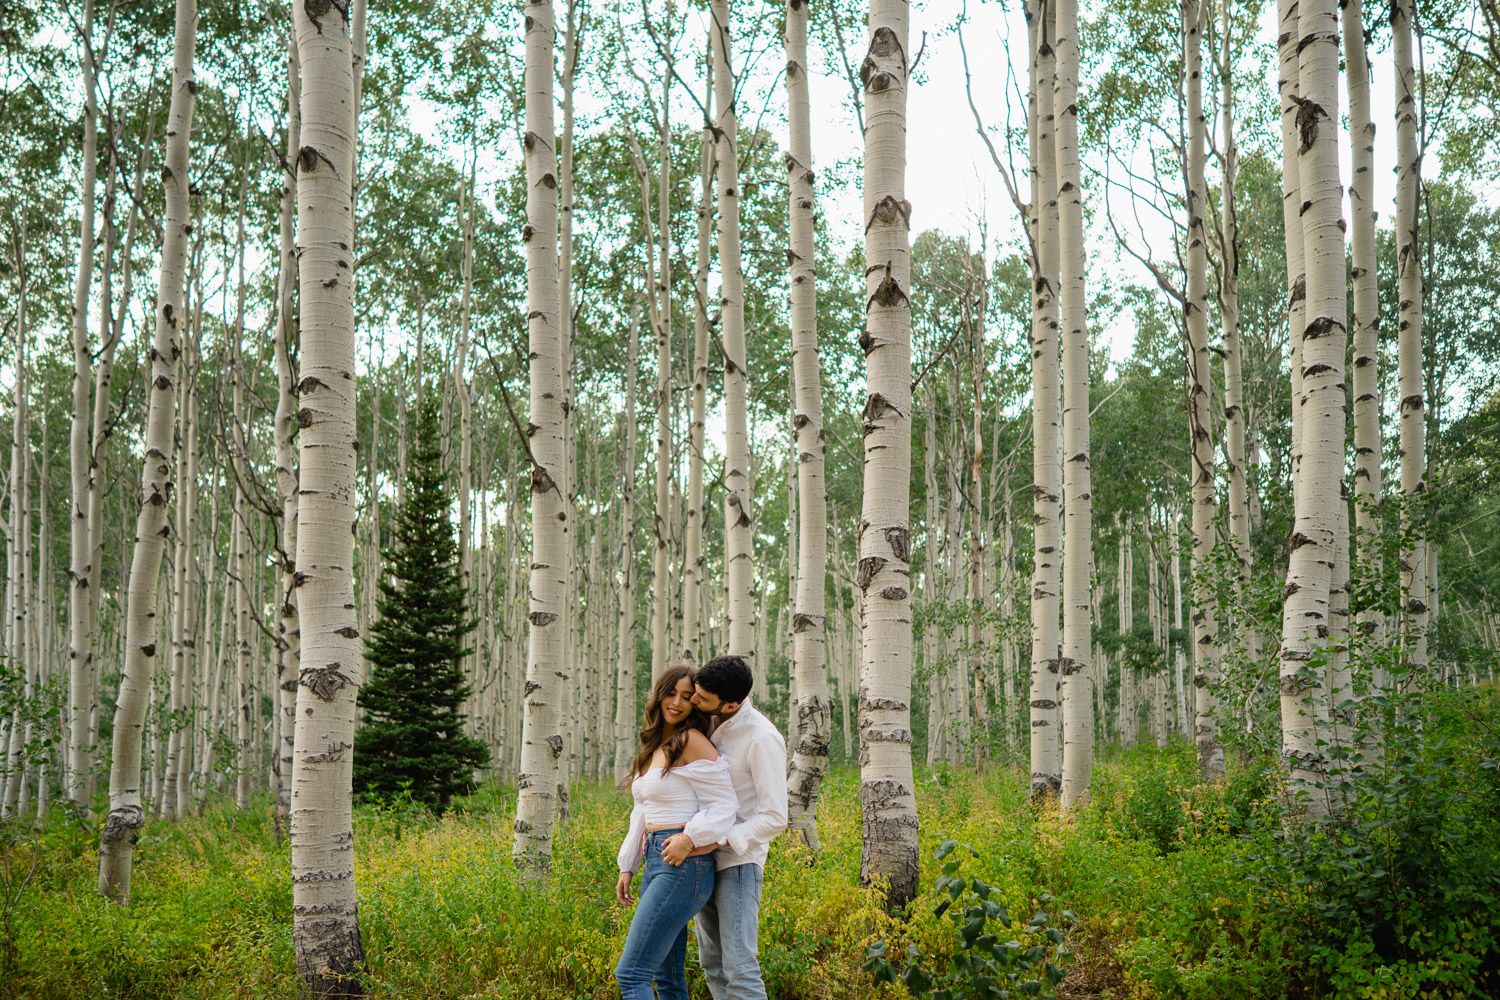 man and woman engagements trees blue sky empire pass